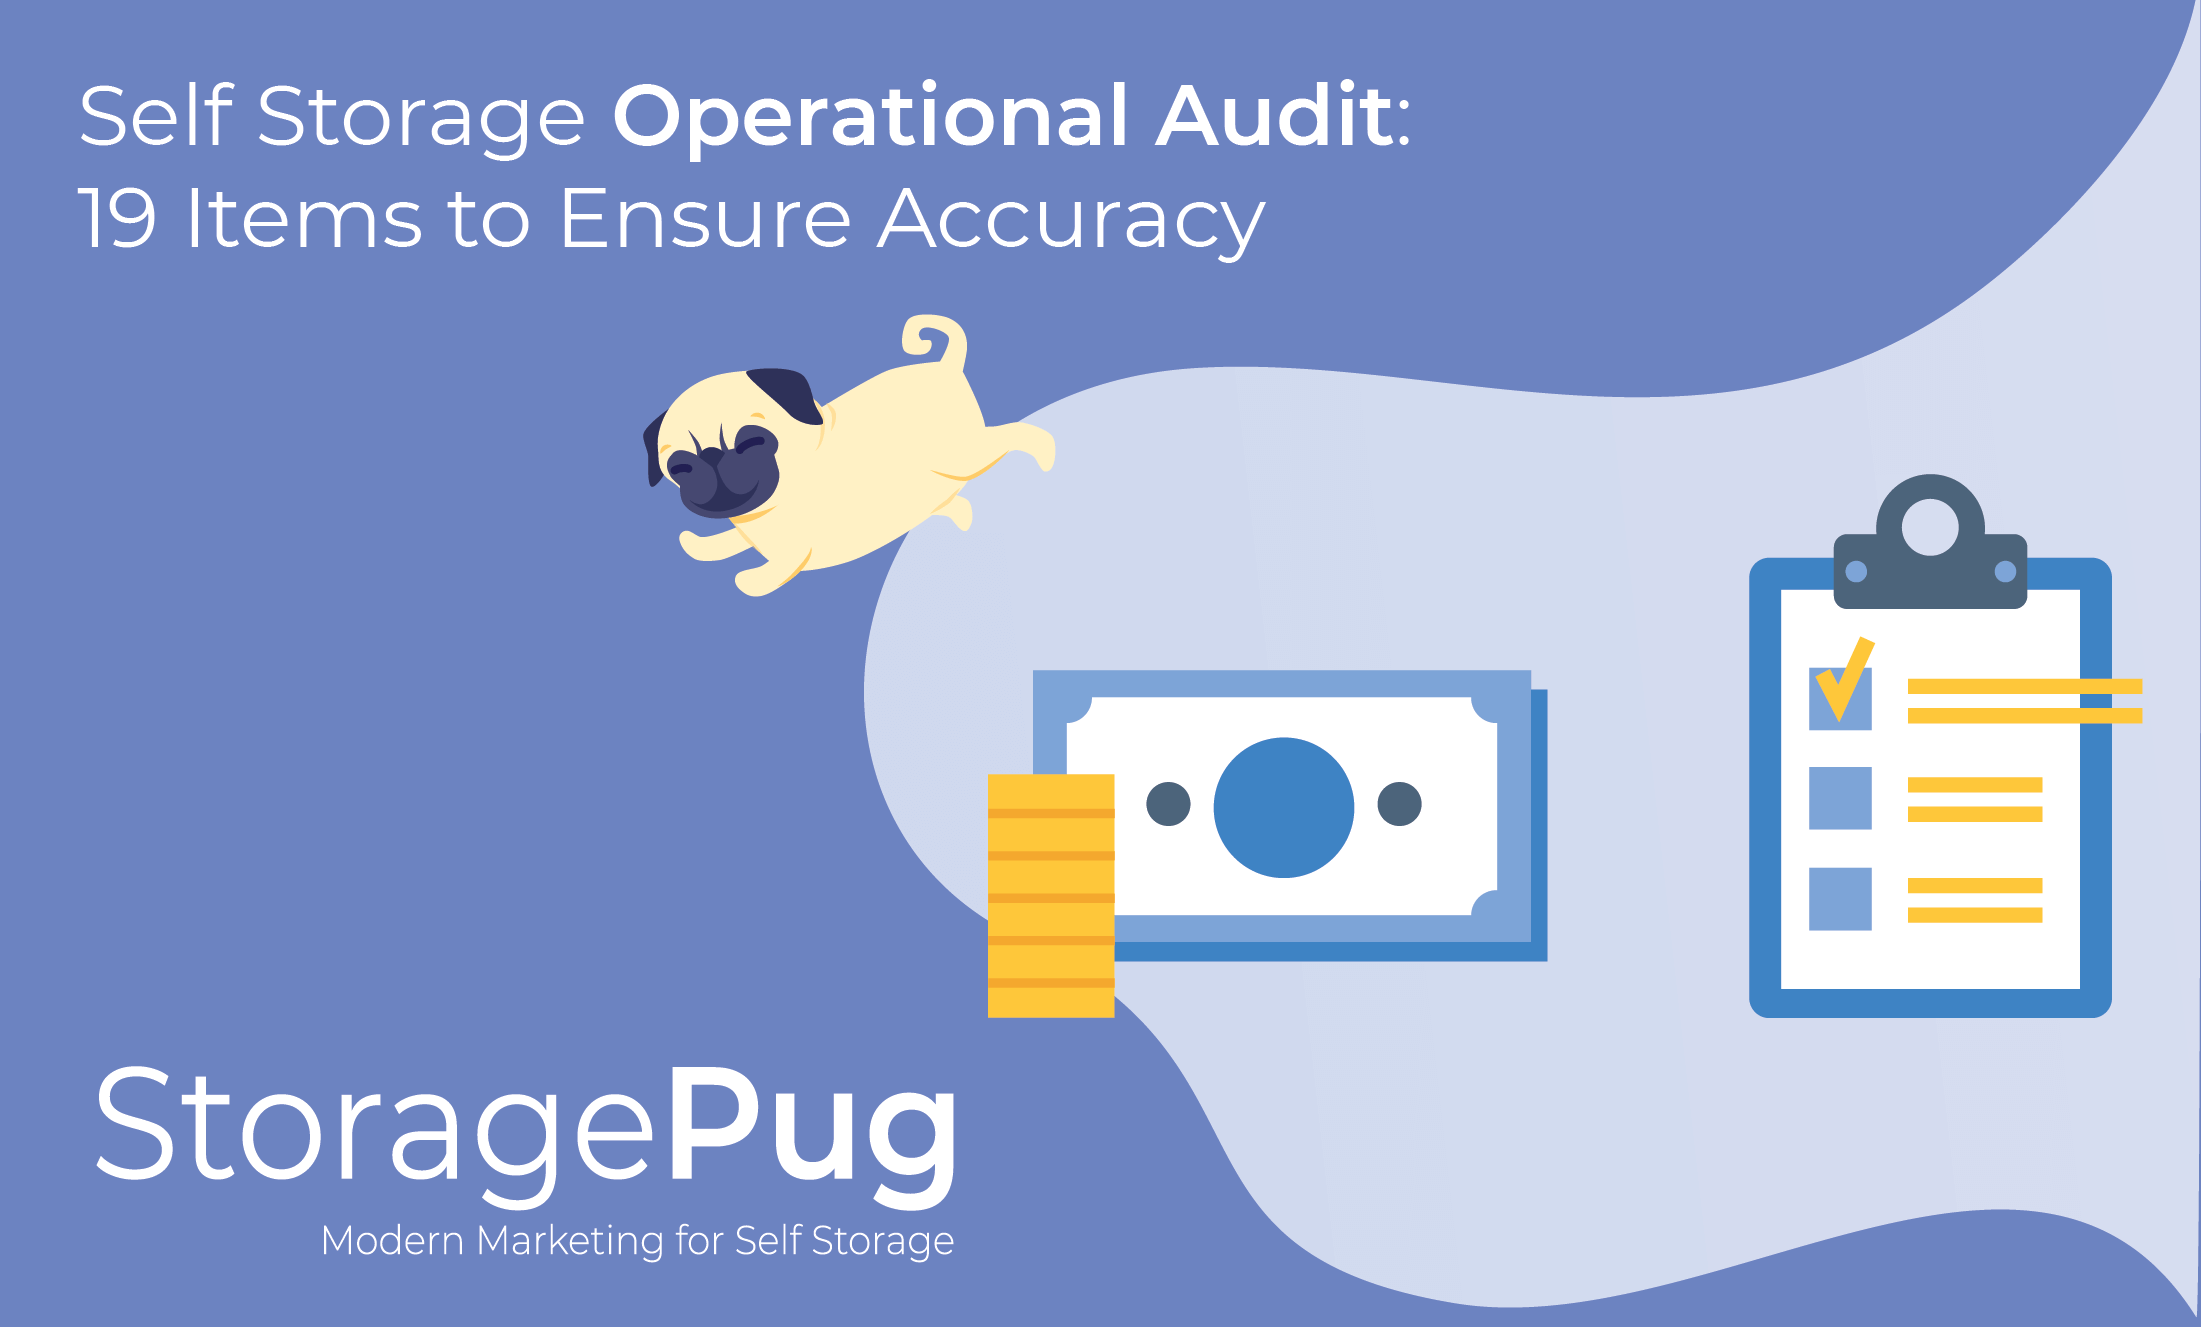 Self Storage Operational Audit 19 Items to Ensure Accuracy